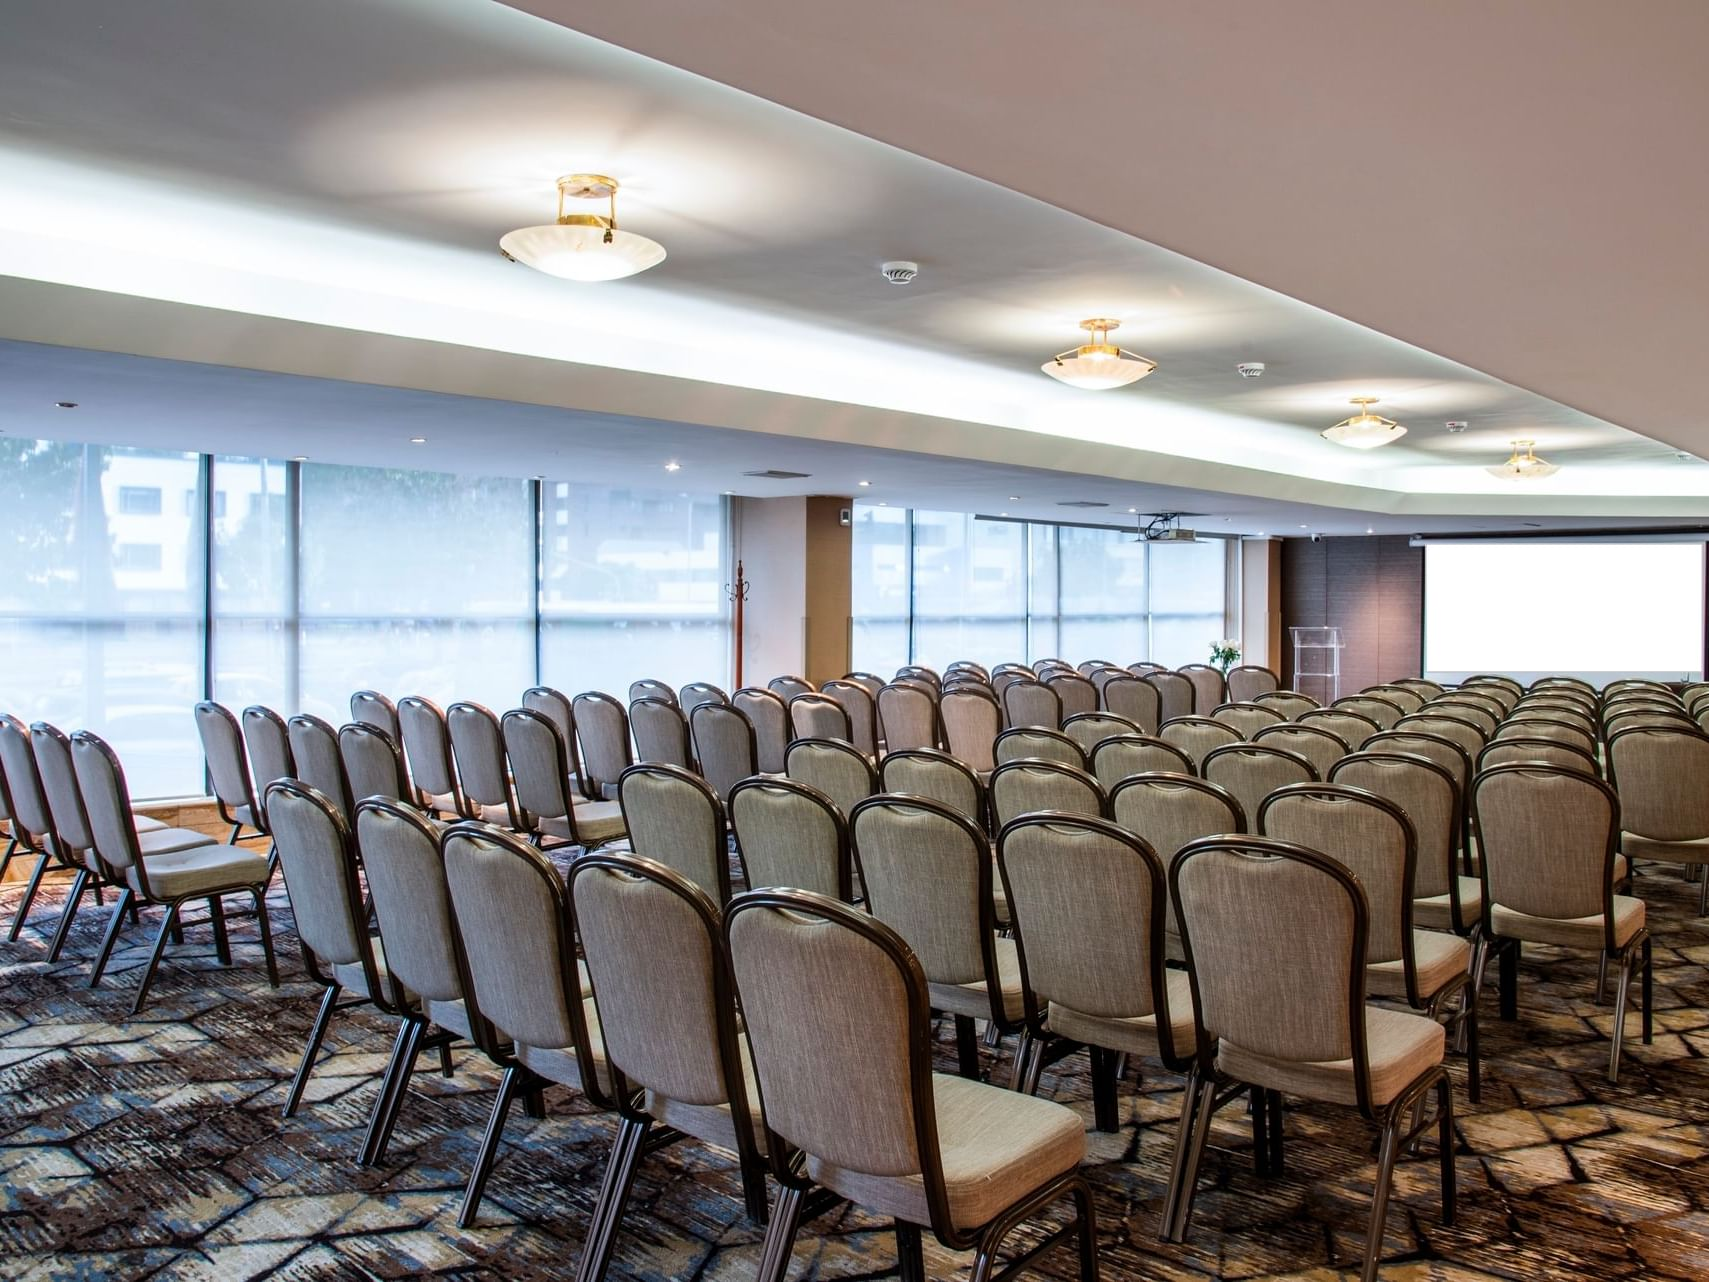 La Candelaria room arranged with chairs at Bogota Plaza Hotel